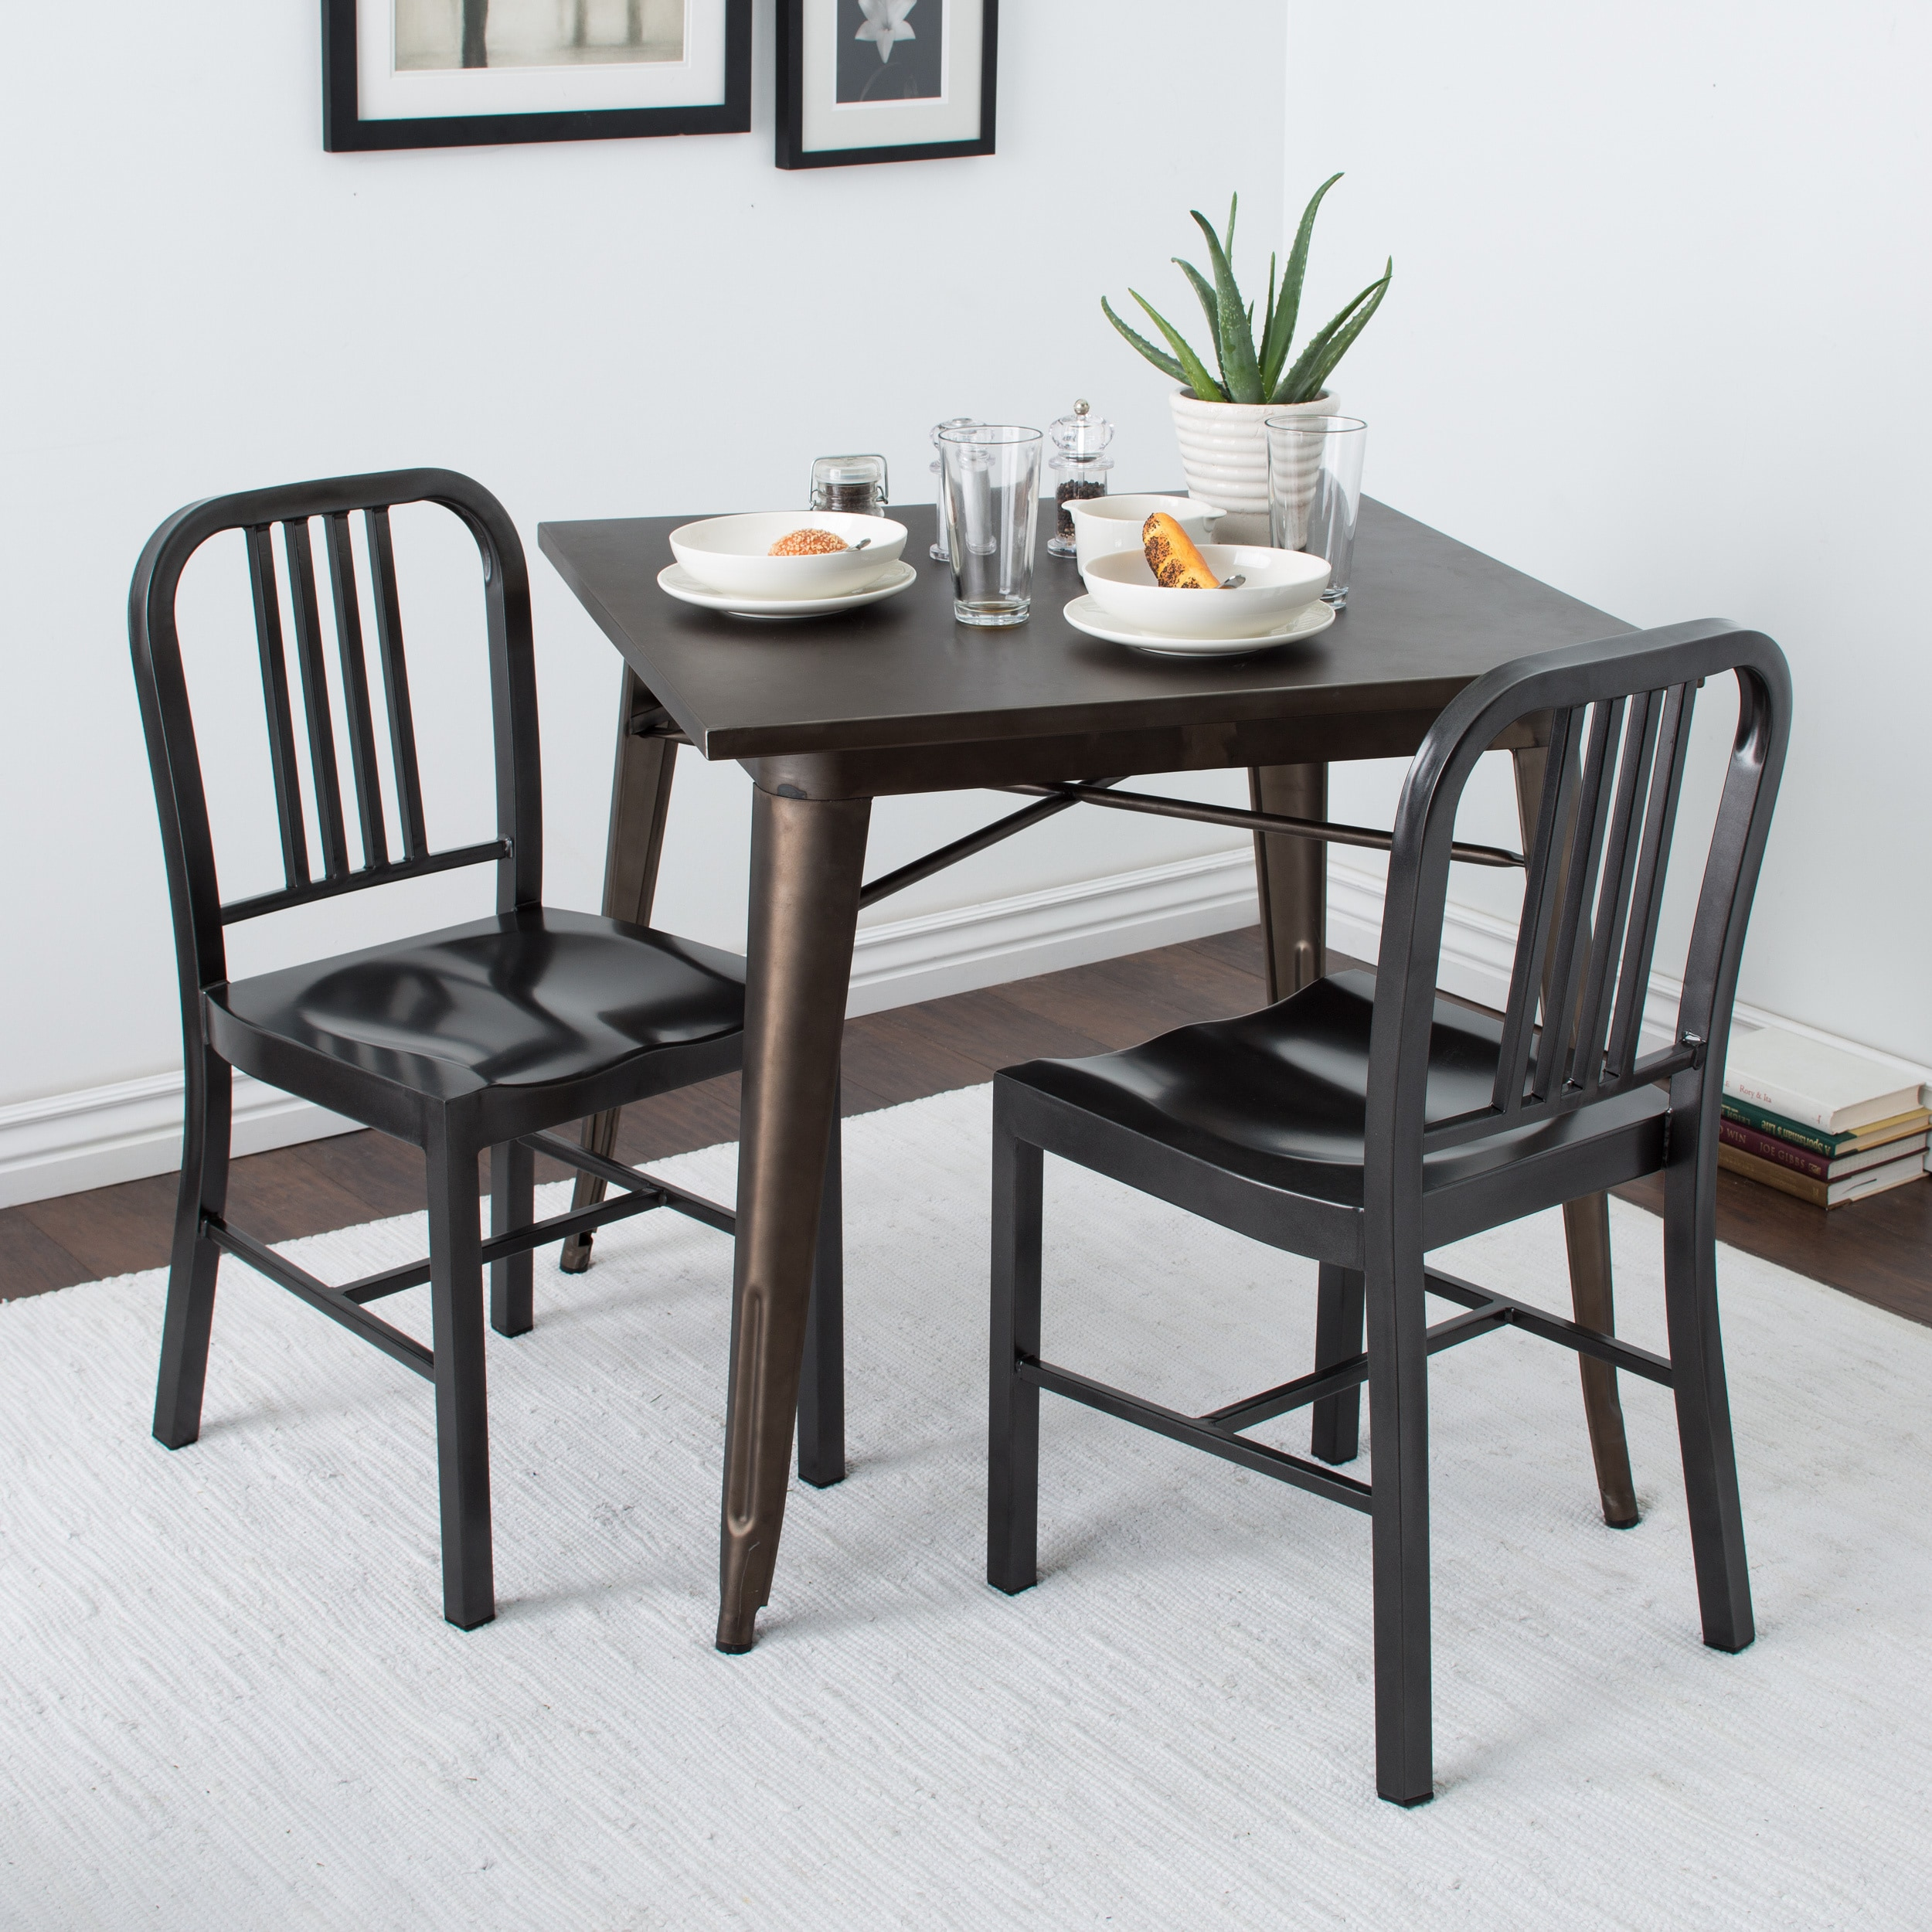 Shop jasper laine charcoal metal dining chairs set of 2 free shipping today overstock com 7655052